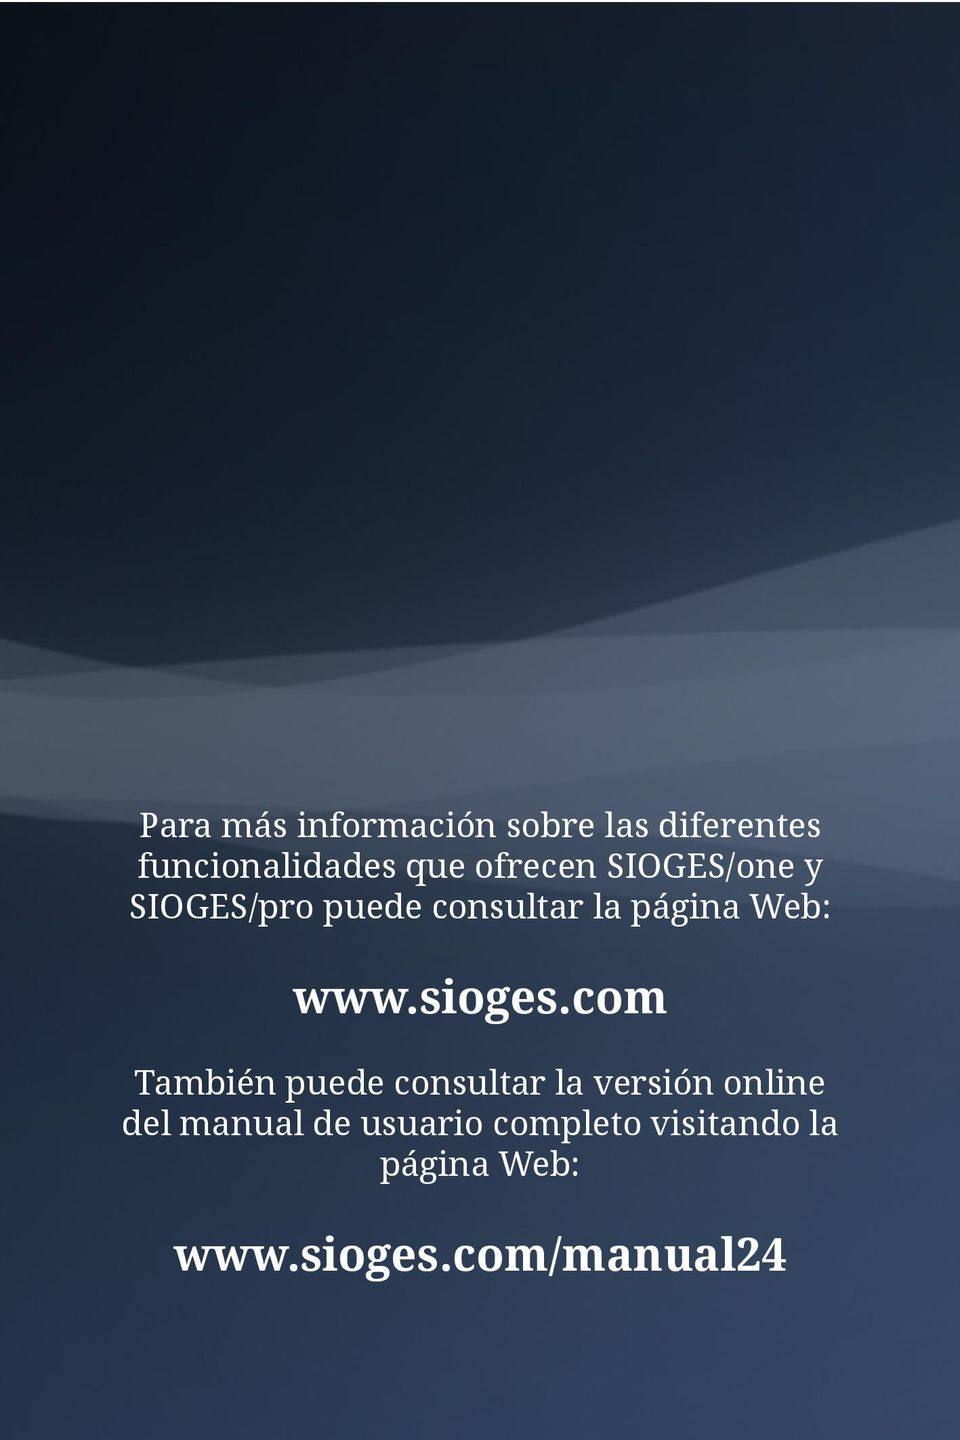 www.sioges.